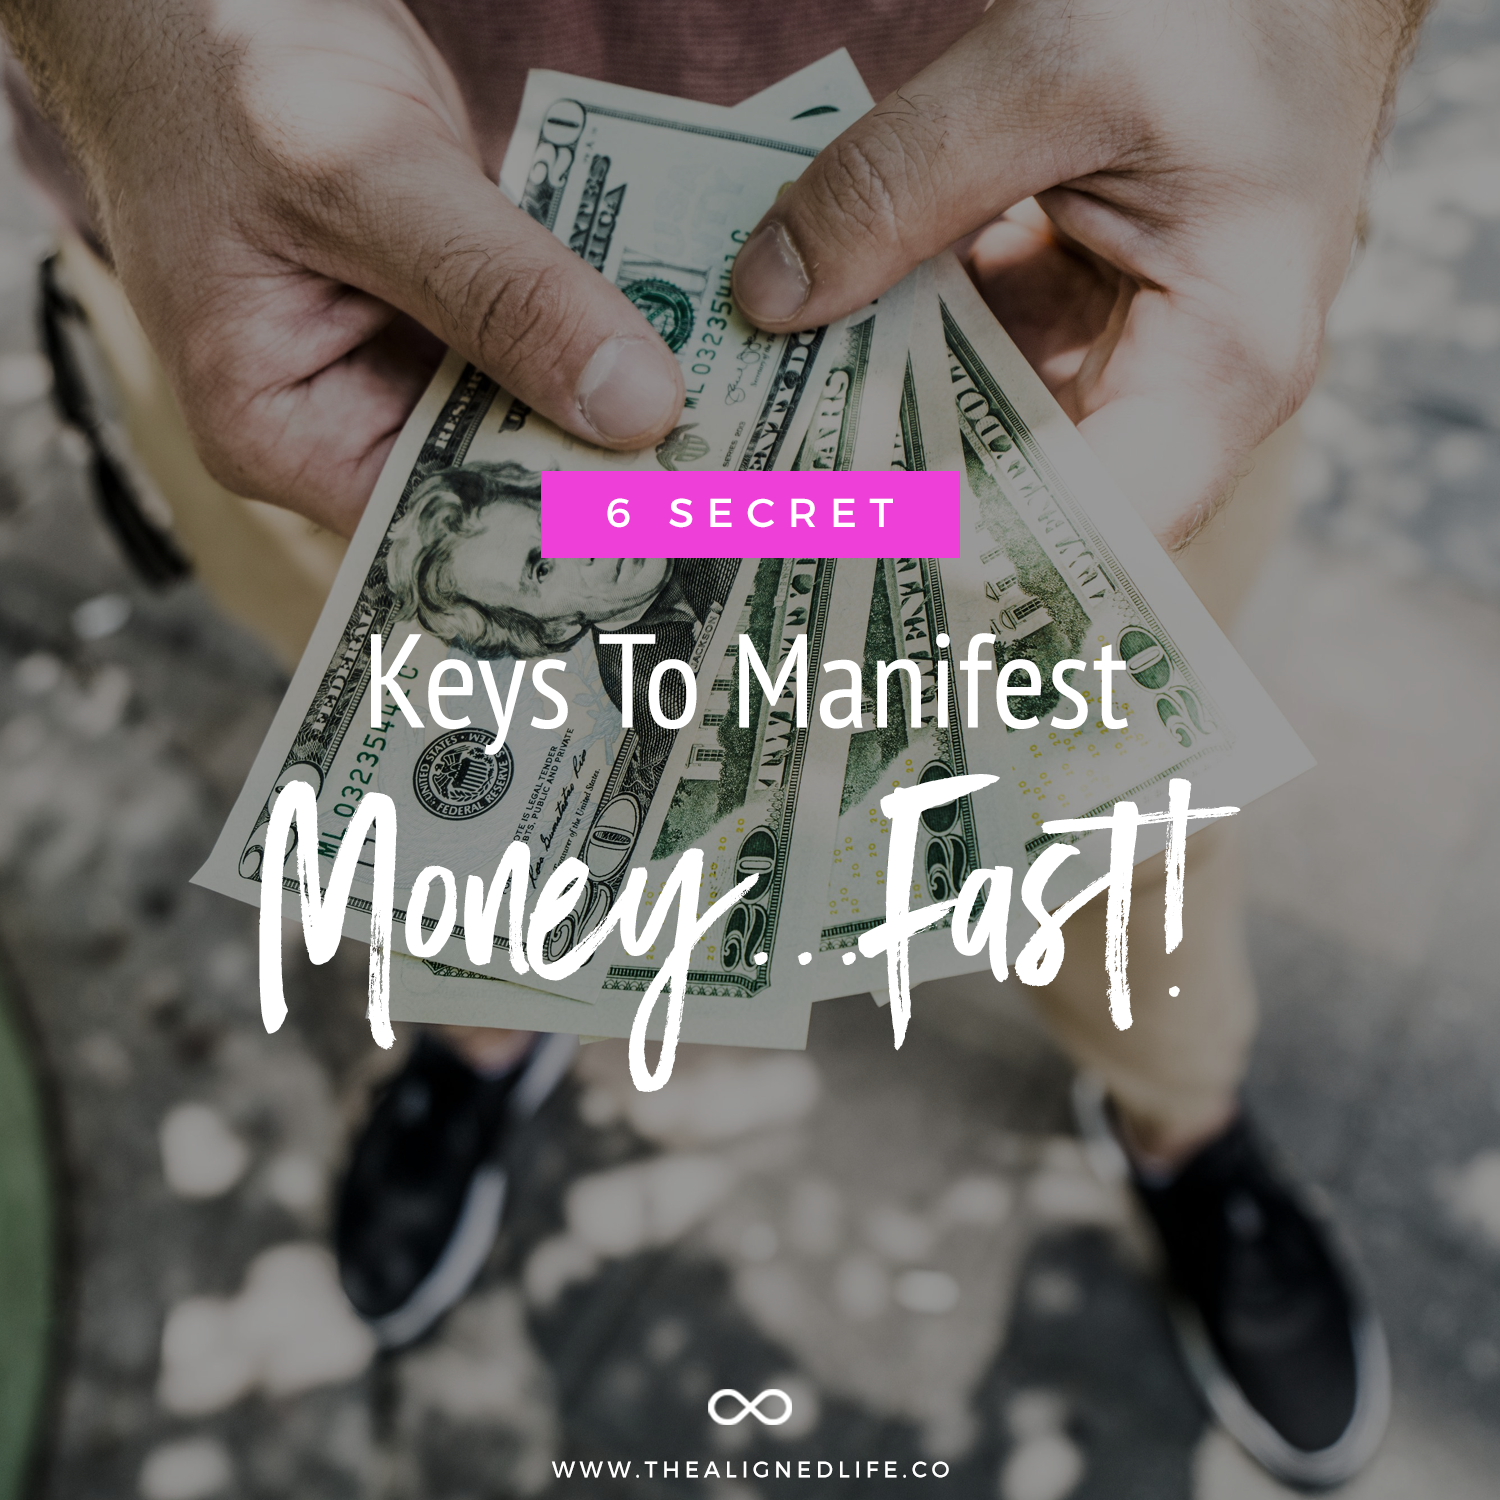 6 Secret Keys To Manifest Money Fast